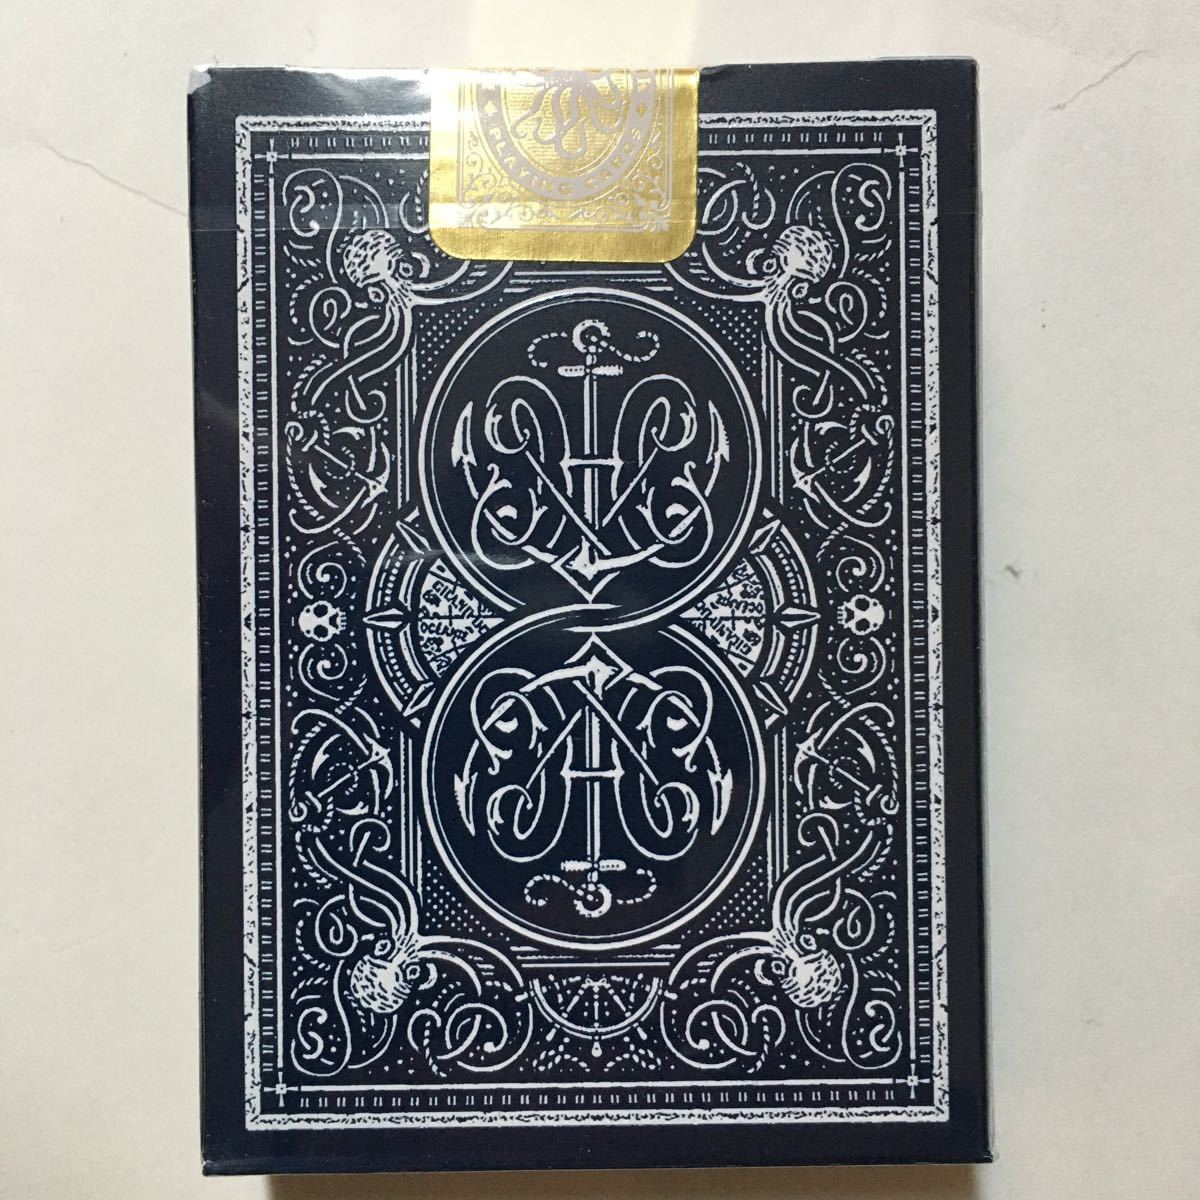 HMNIM PLAYING CARDS HI MY NAME IS MARK DAN AND DAVE D&D ダンデブ 新品 1デック_画像2